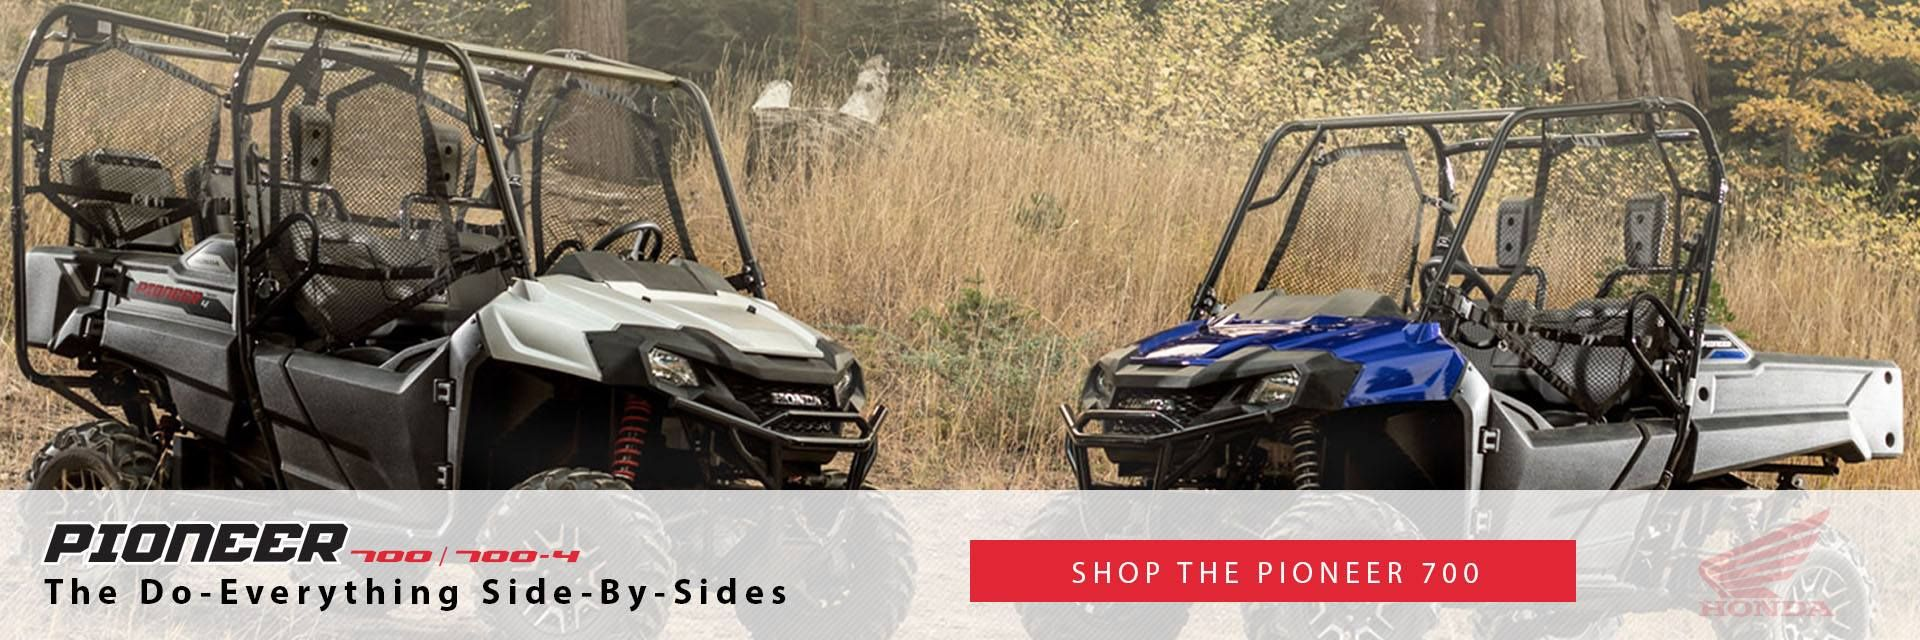 Shop Honda Pioneer 700 Utility Vehicles at Christman's Cycle Sales in Palatine Bridge, NY